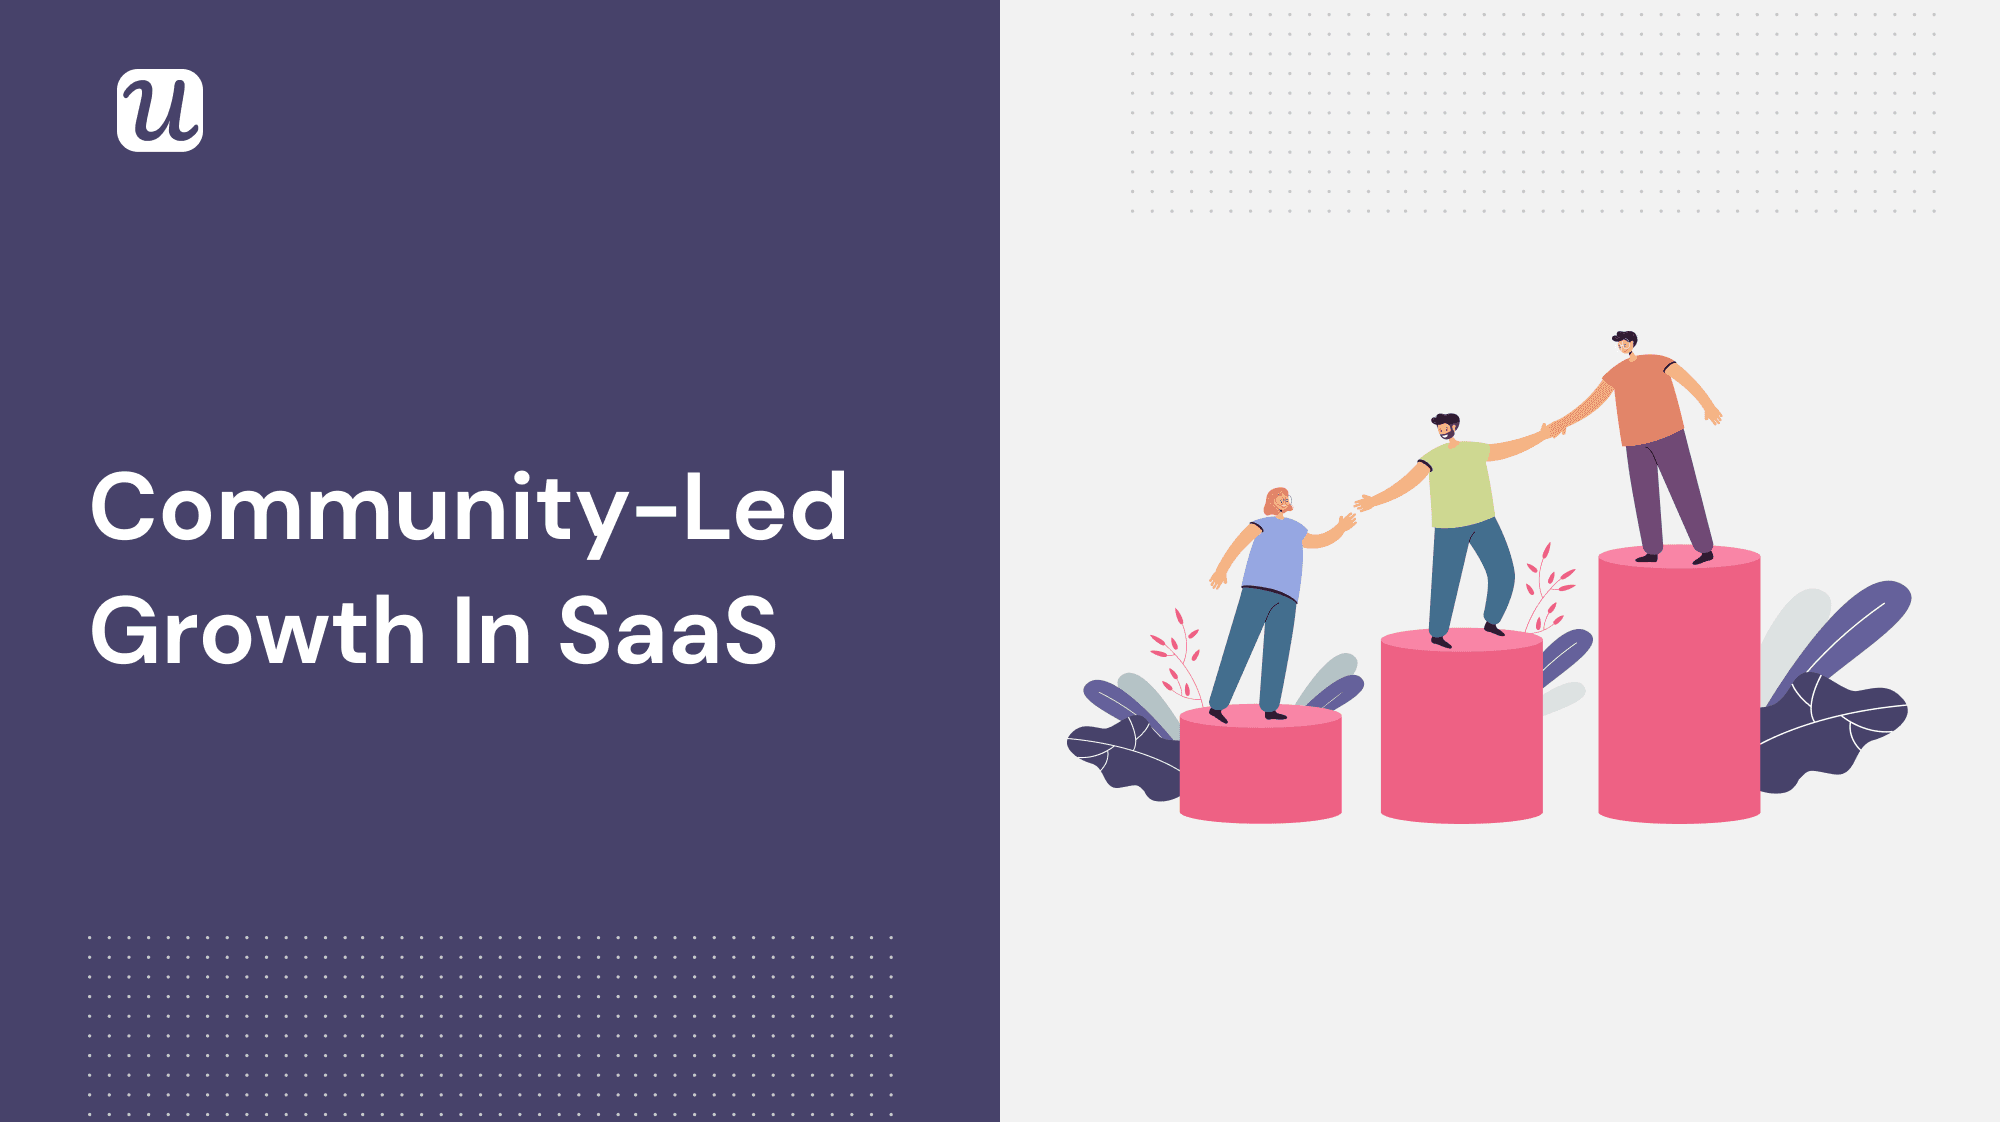 Say Hello To The Age Of Community-Led Growth in SaaS